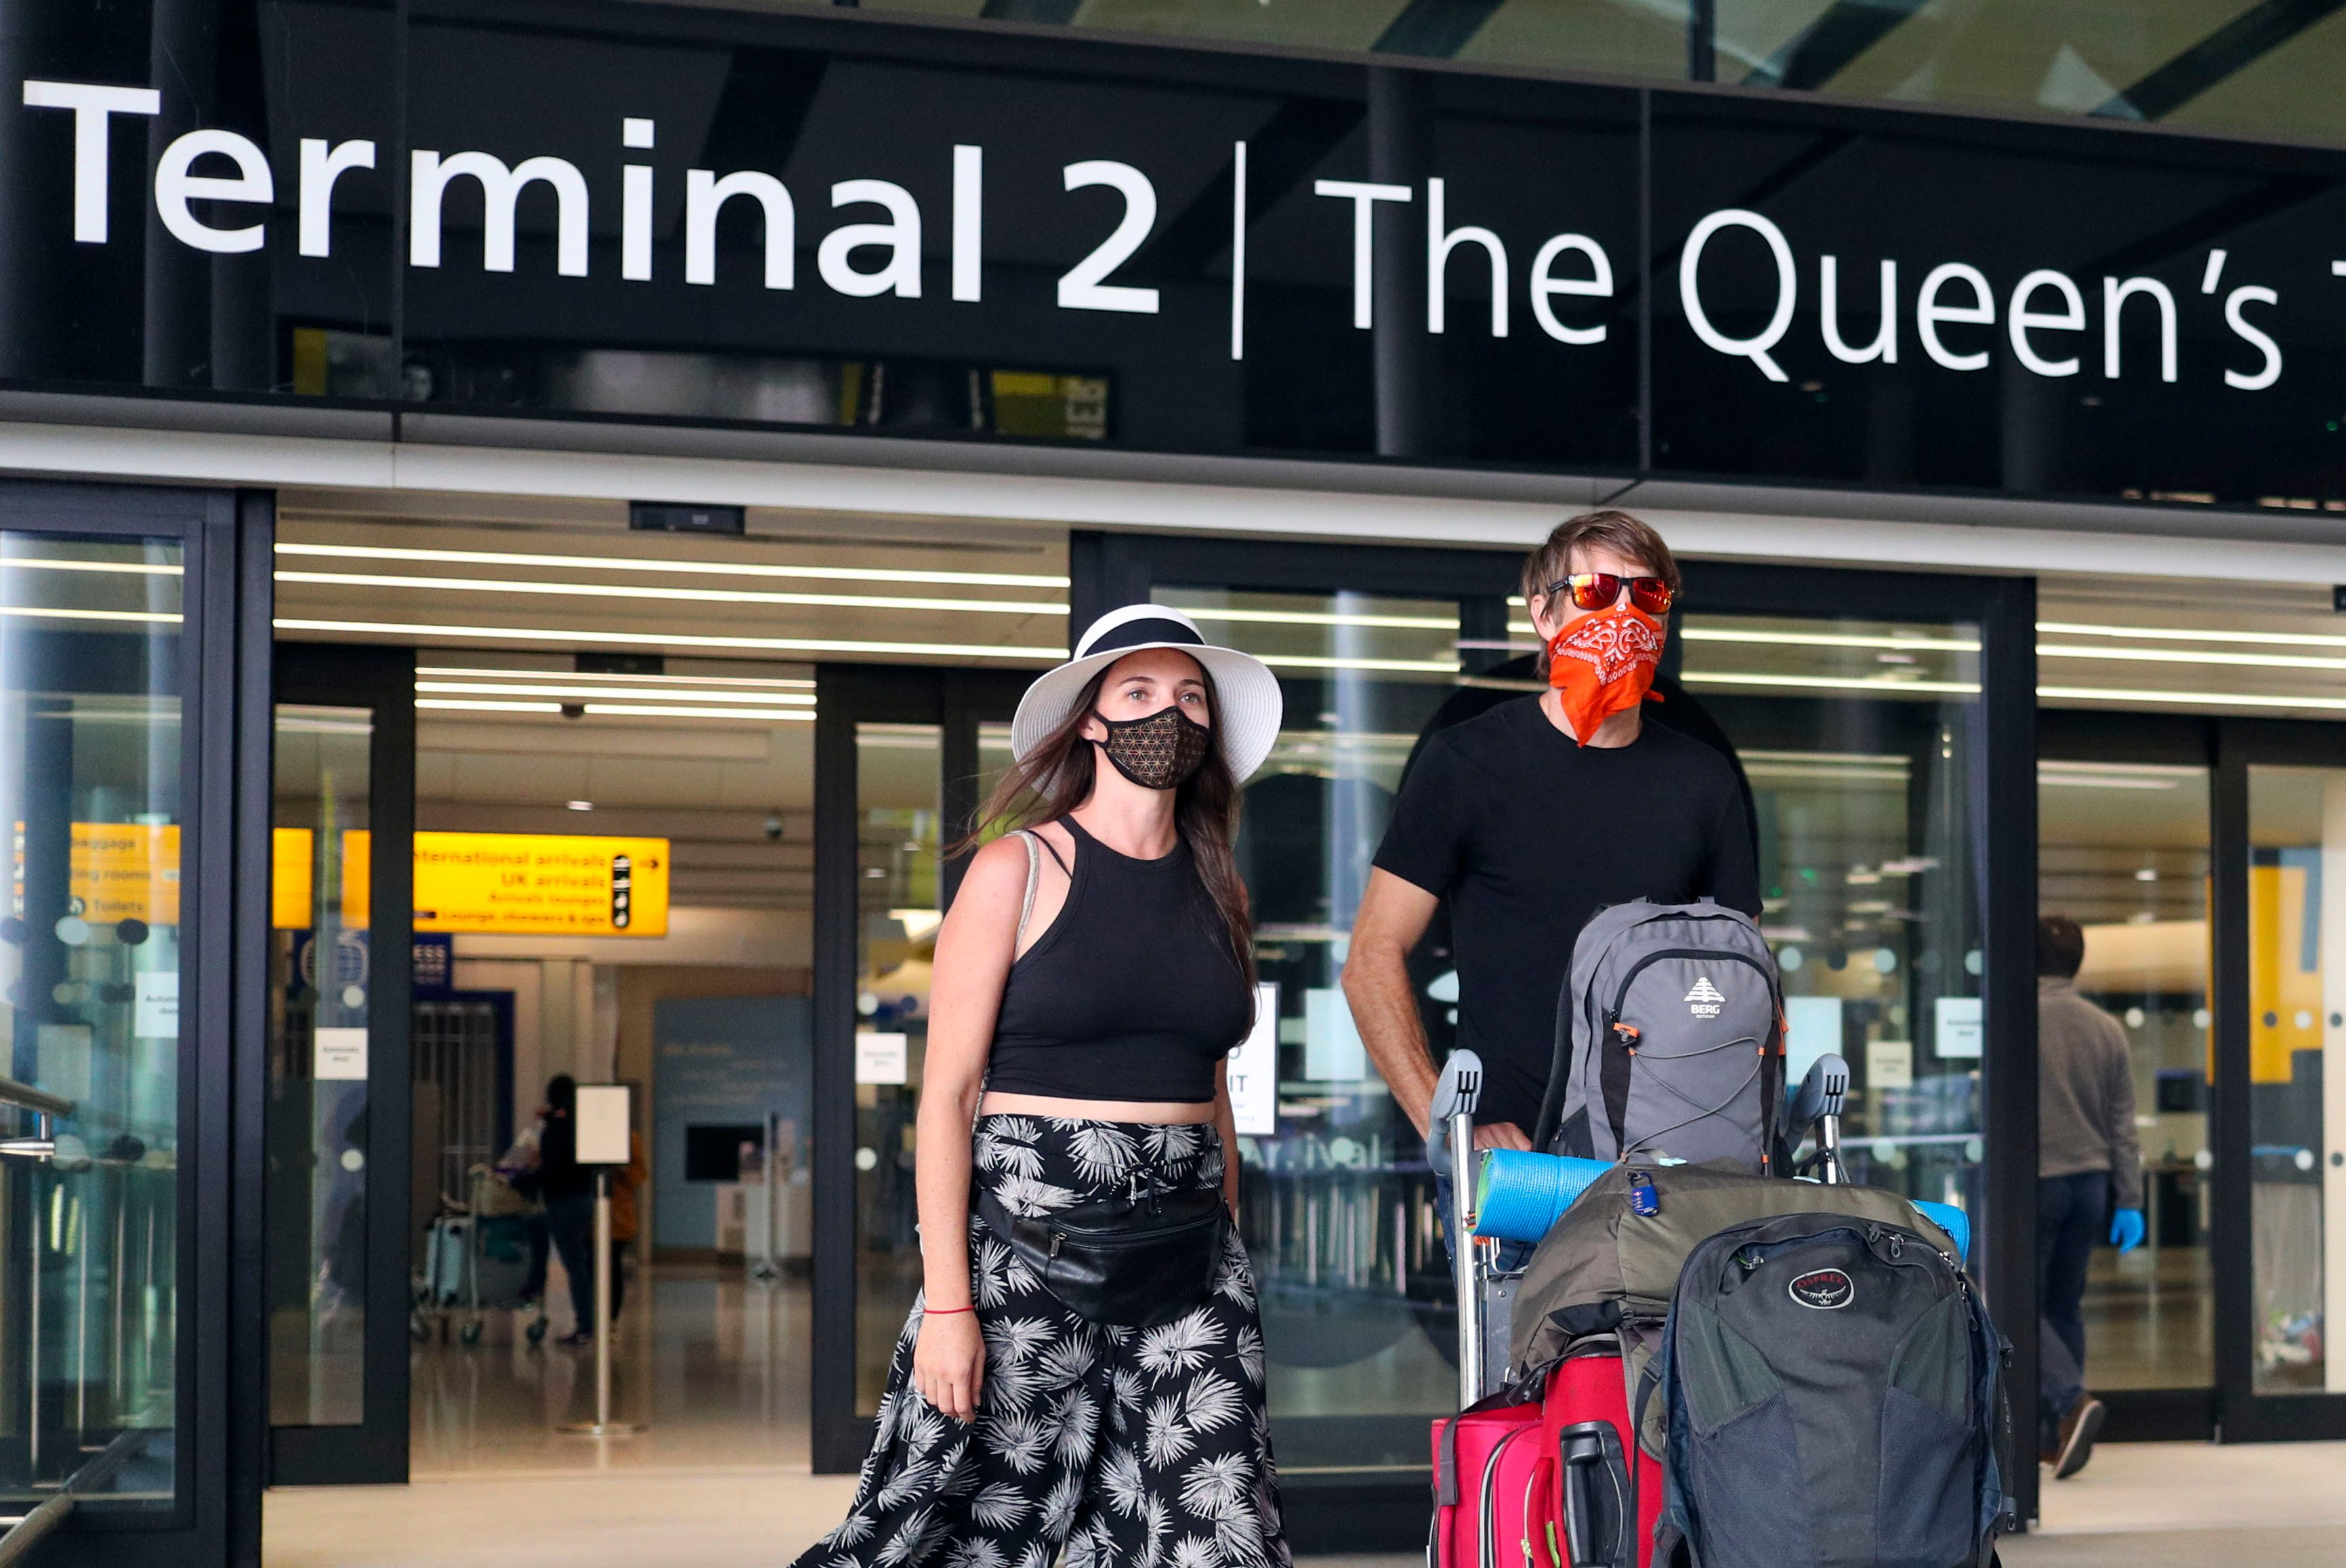 Holidays to be close to normal despite Covid-19, TUI chief says